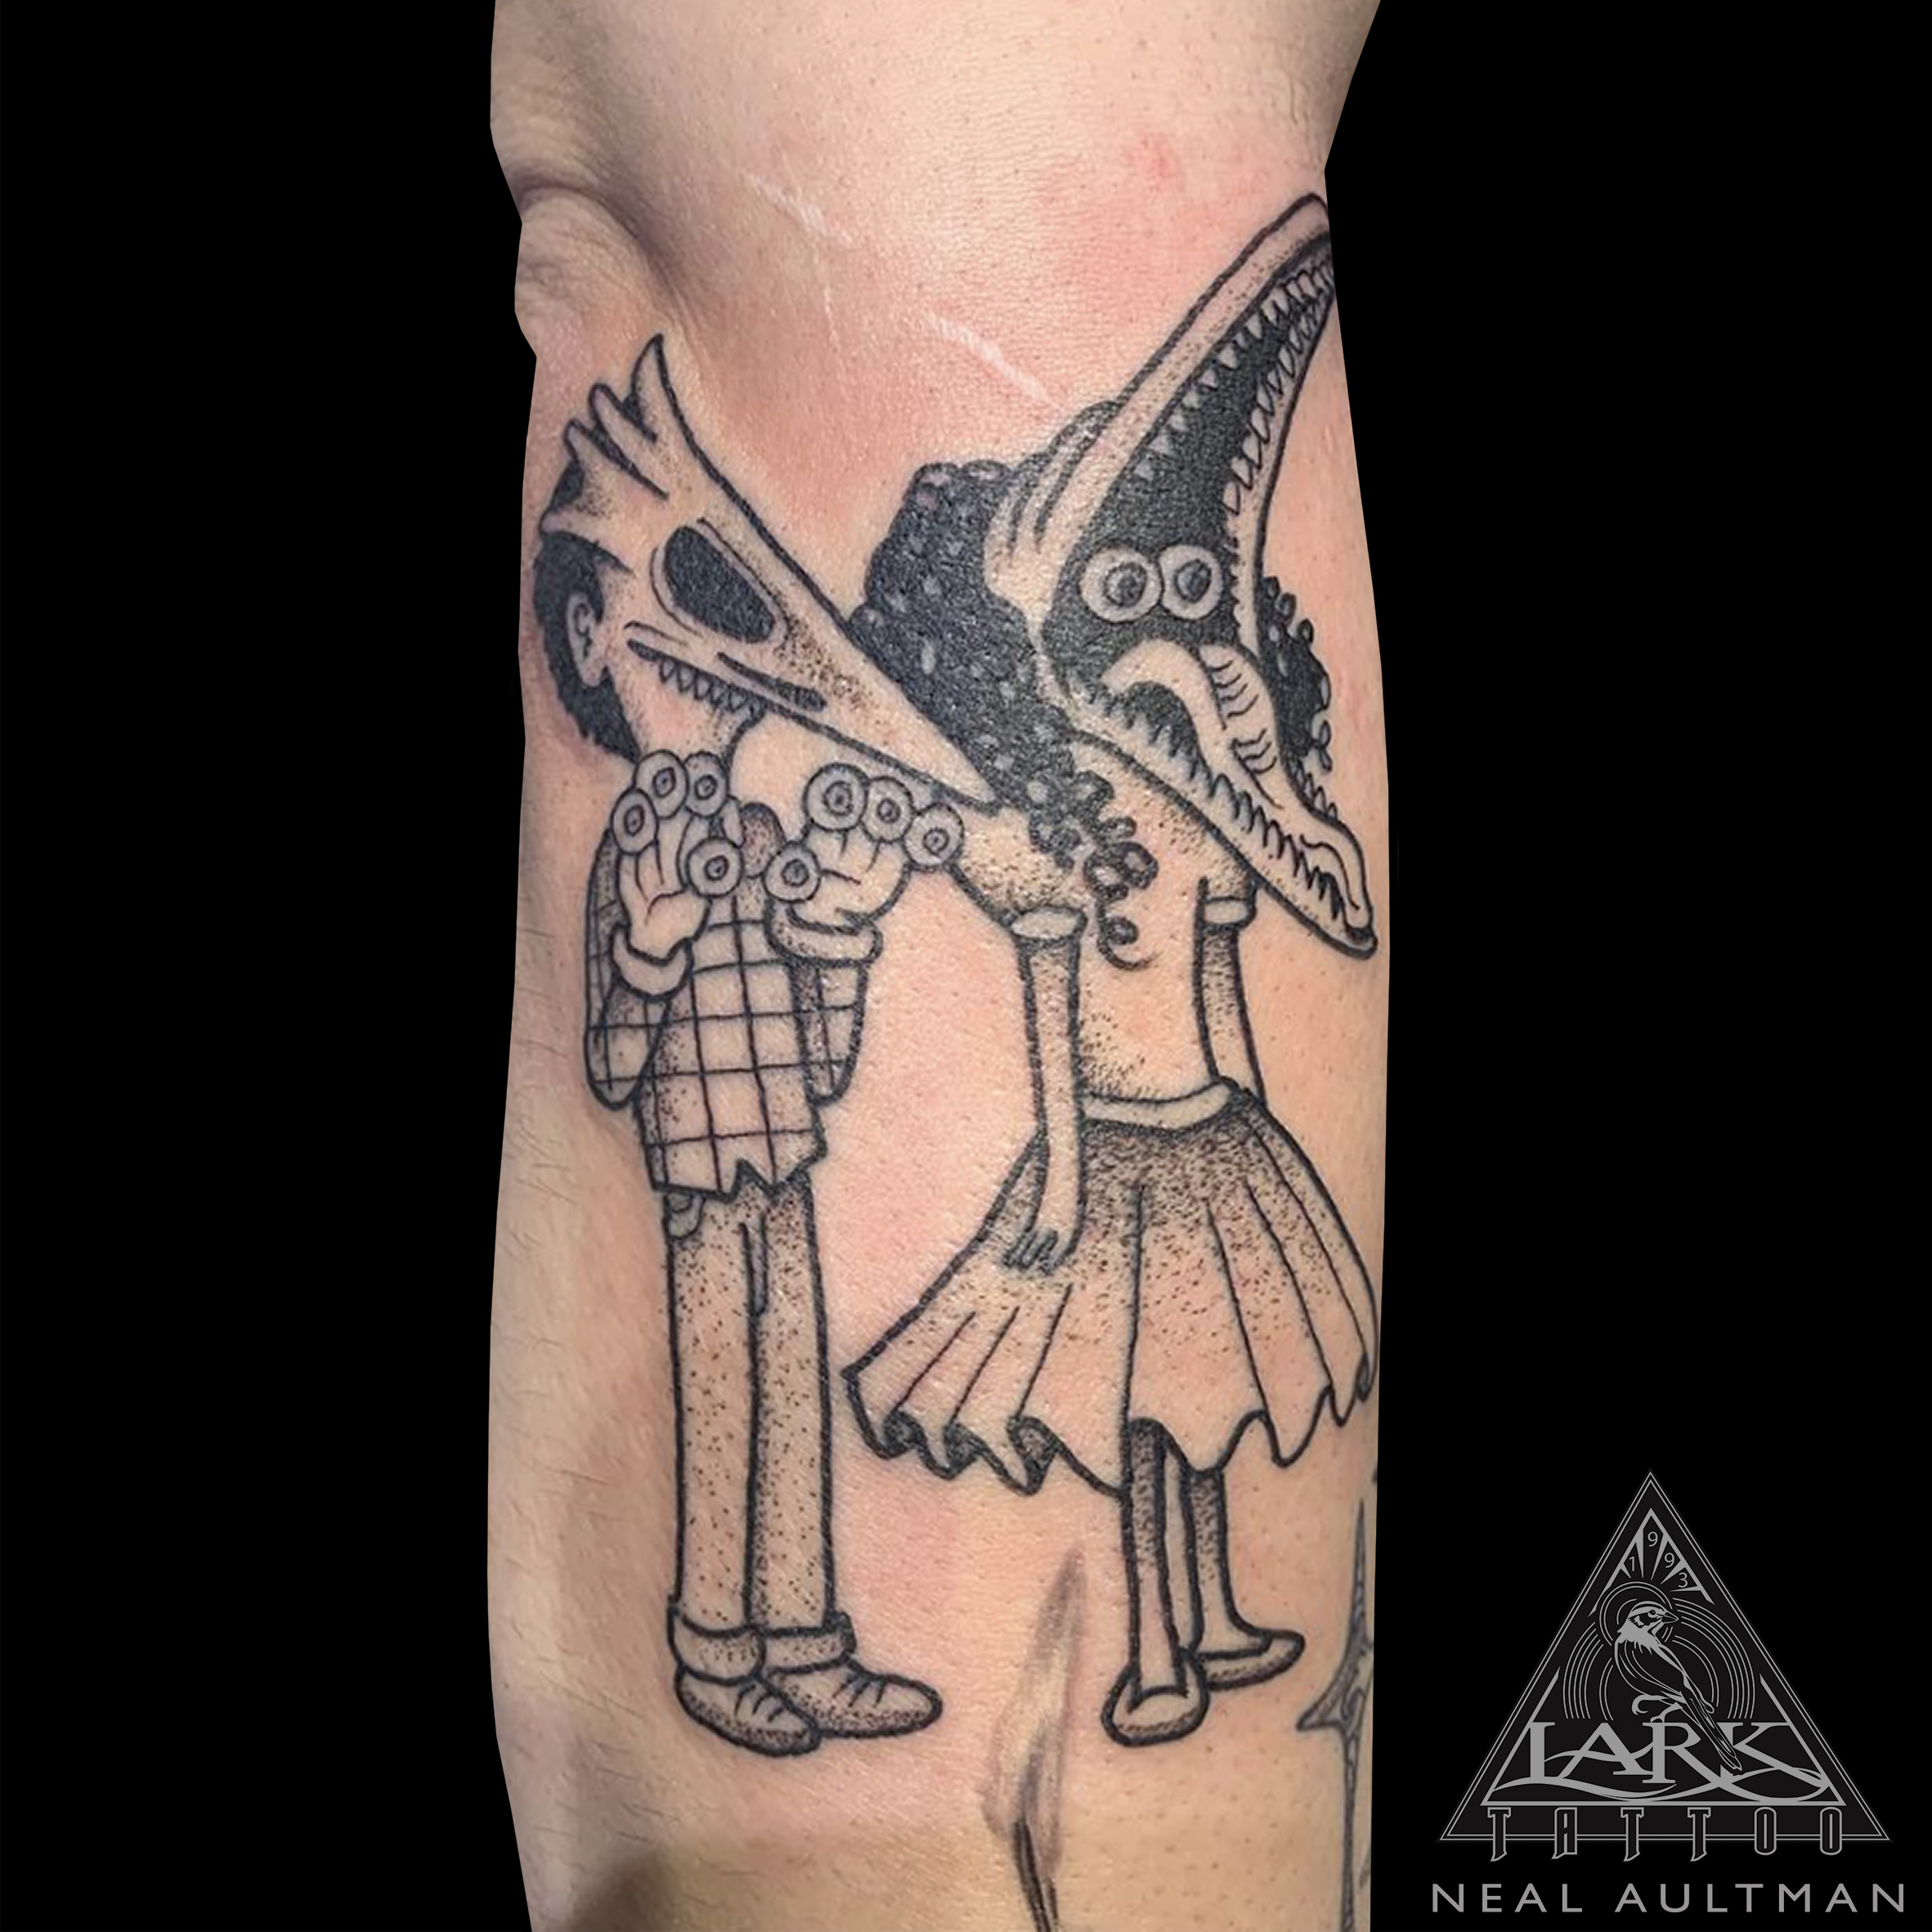 #Beetlejuice #BeetlejuiceTattoo #BeetlejuiceBeetlejuiceBeetlejuice #Maitlands #MaitlandsTattoo #AdamMaitlands #BarbaraMaitlands #AdamMaitlandsTattoo #BarbaraMaitlandsTattoo #AdamAndBarbaraMaitlands #AdamAndBarbaraMaitlandsTattoo #Horror #HorrorTattoo #TimBurton #TimBurtonTattoo #tattoo #tattoos #tat #tats #tatts #tatted #tattedup #tattoist #tattooed #inked #inkedup #ink #tattoooftheday #amazingink #bodyart #larktattoo #larktattoos #larktattoowestbury #westbury #longisland #NY #NewYork #usa #art